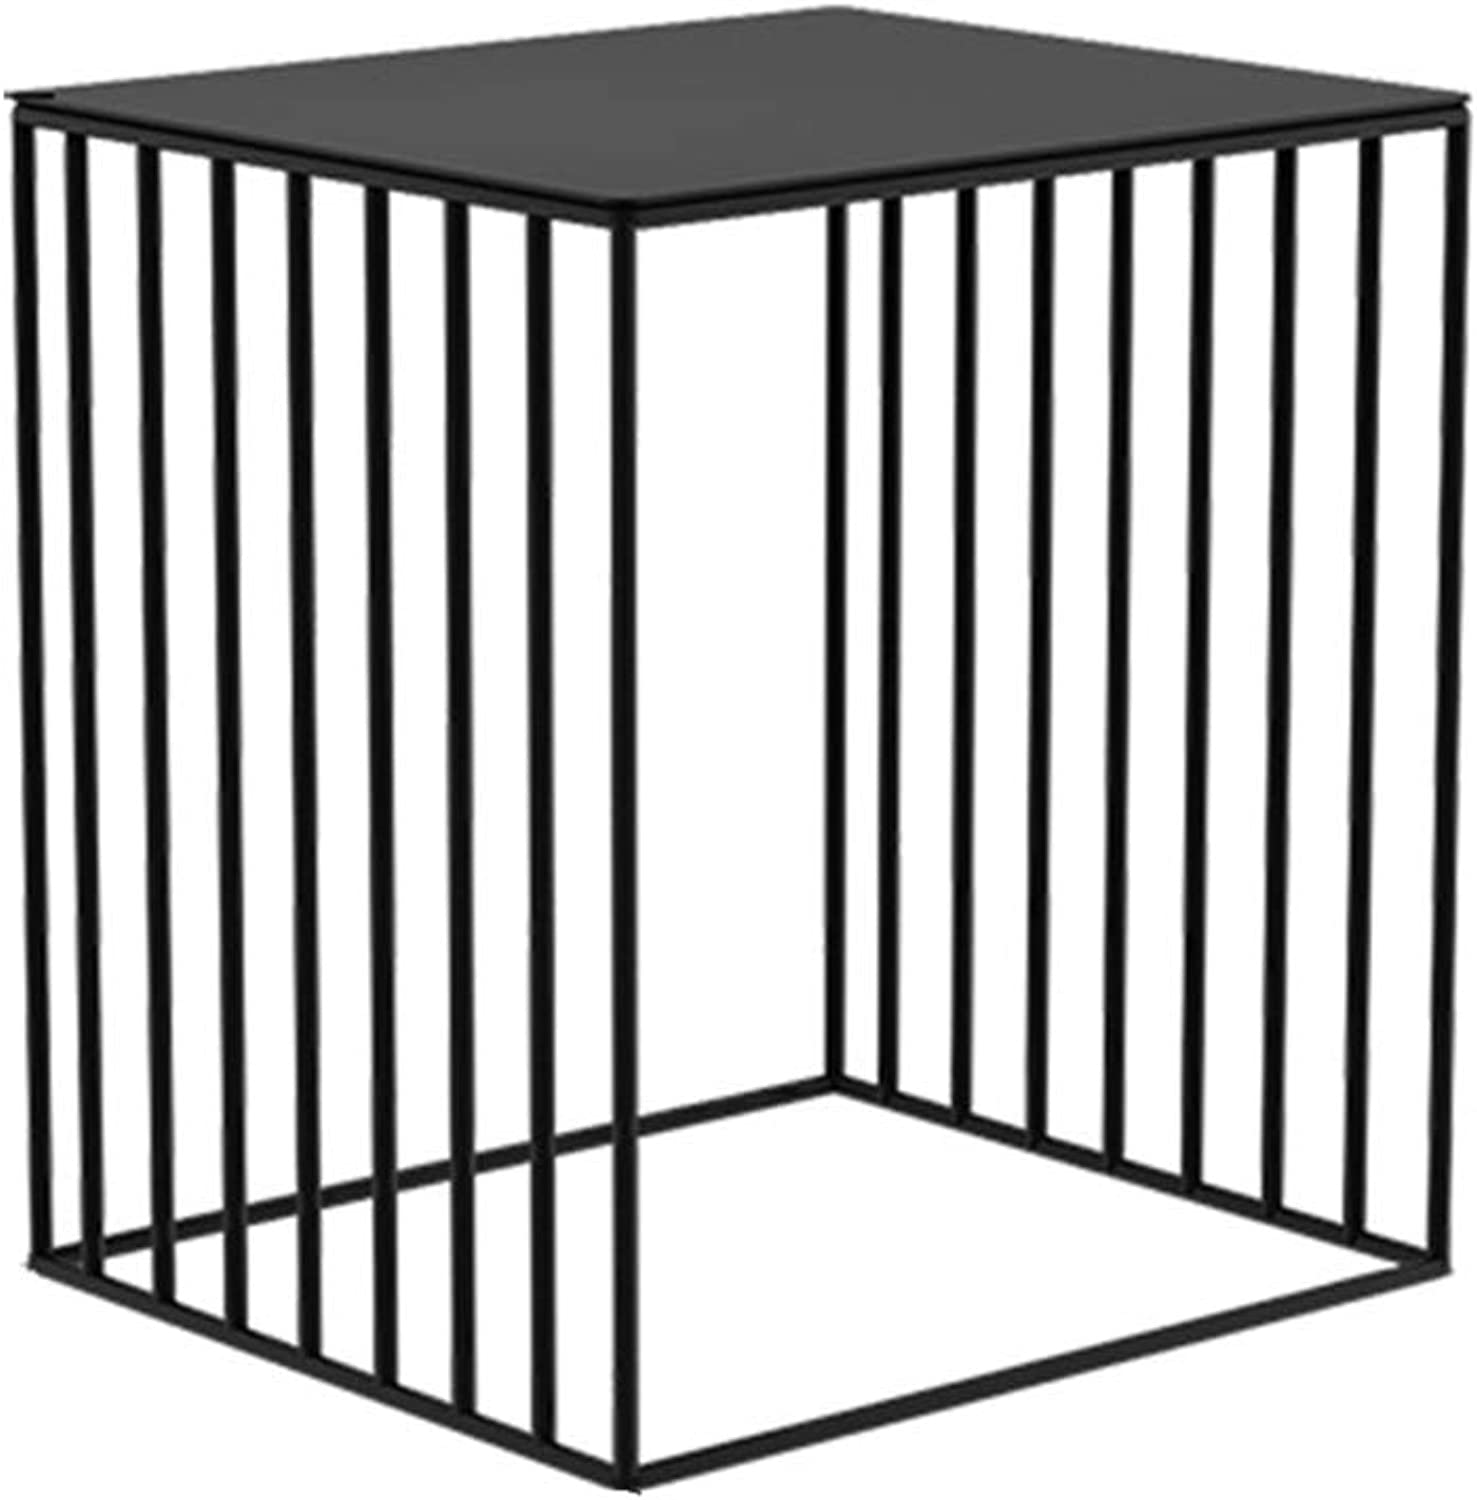 NAN Wrought Iron Side table, Tempered Glass Panel, Metal Frame, for Entrance Passage, Living Room, Hallway, TYQ86J Folding Tables (color   Black)